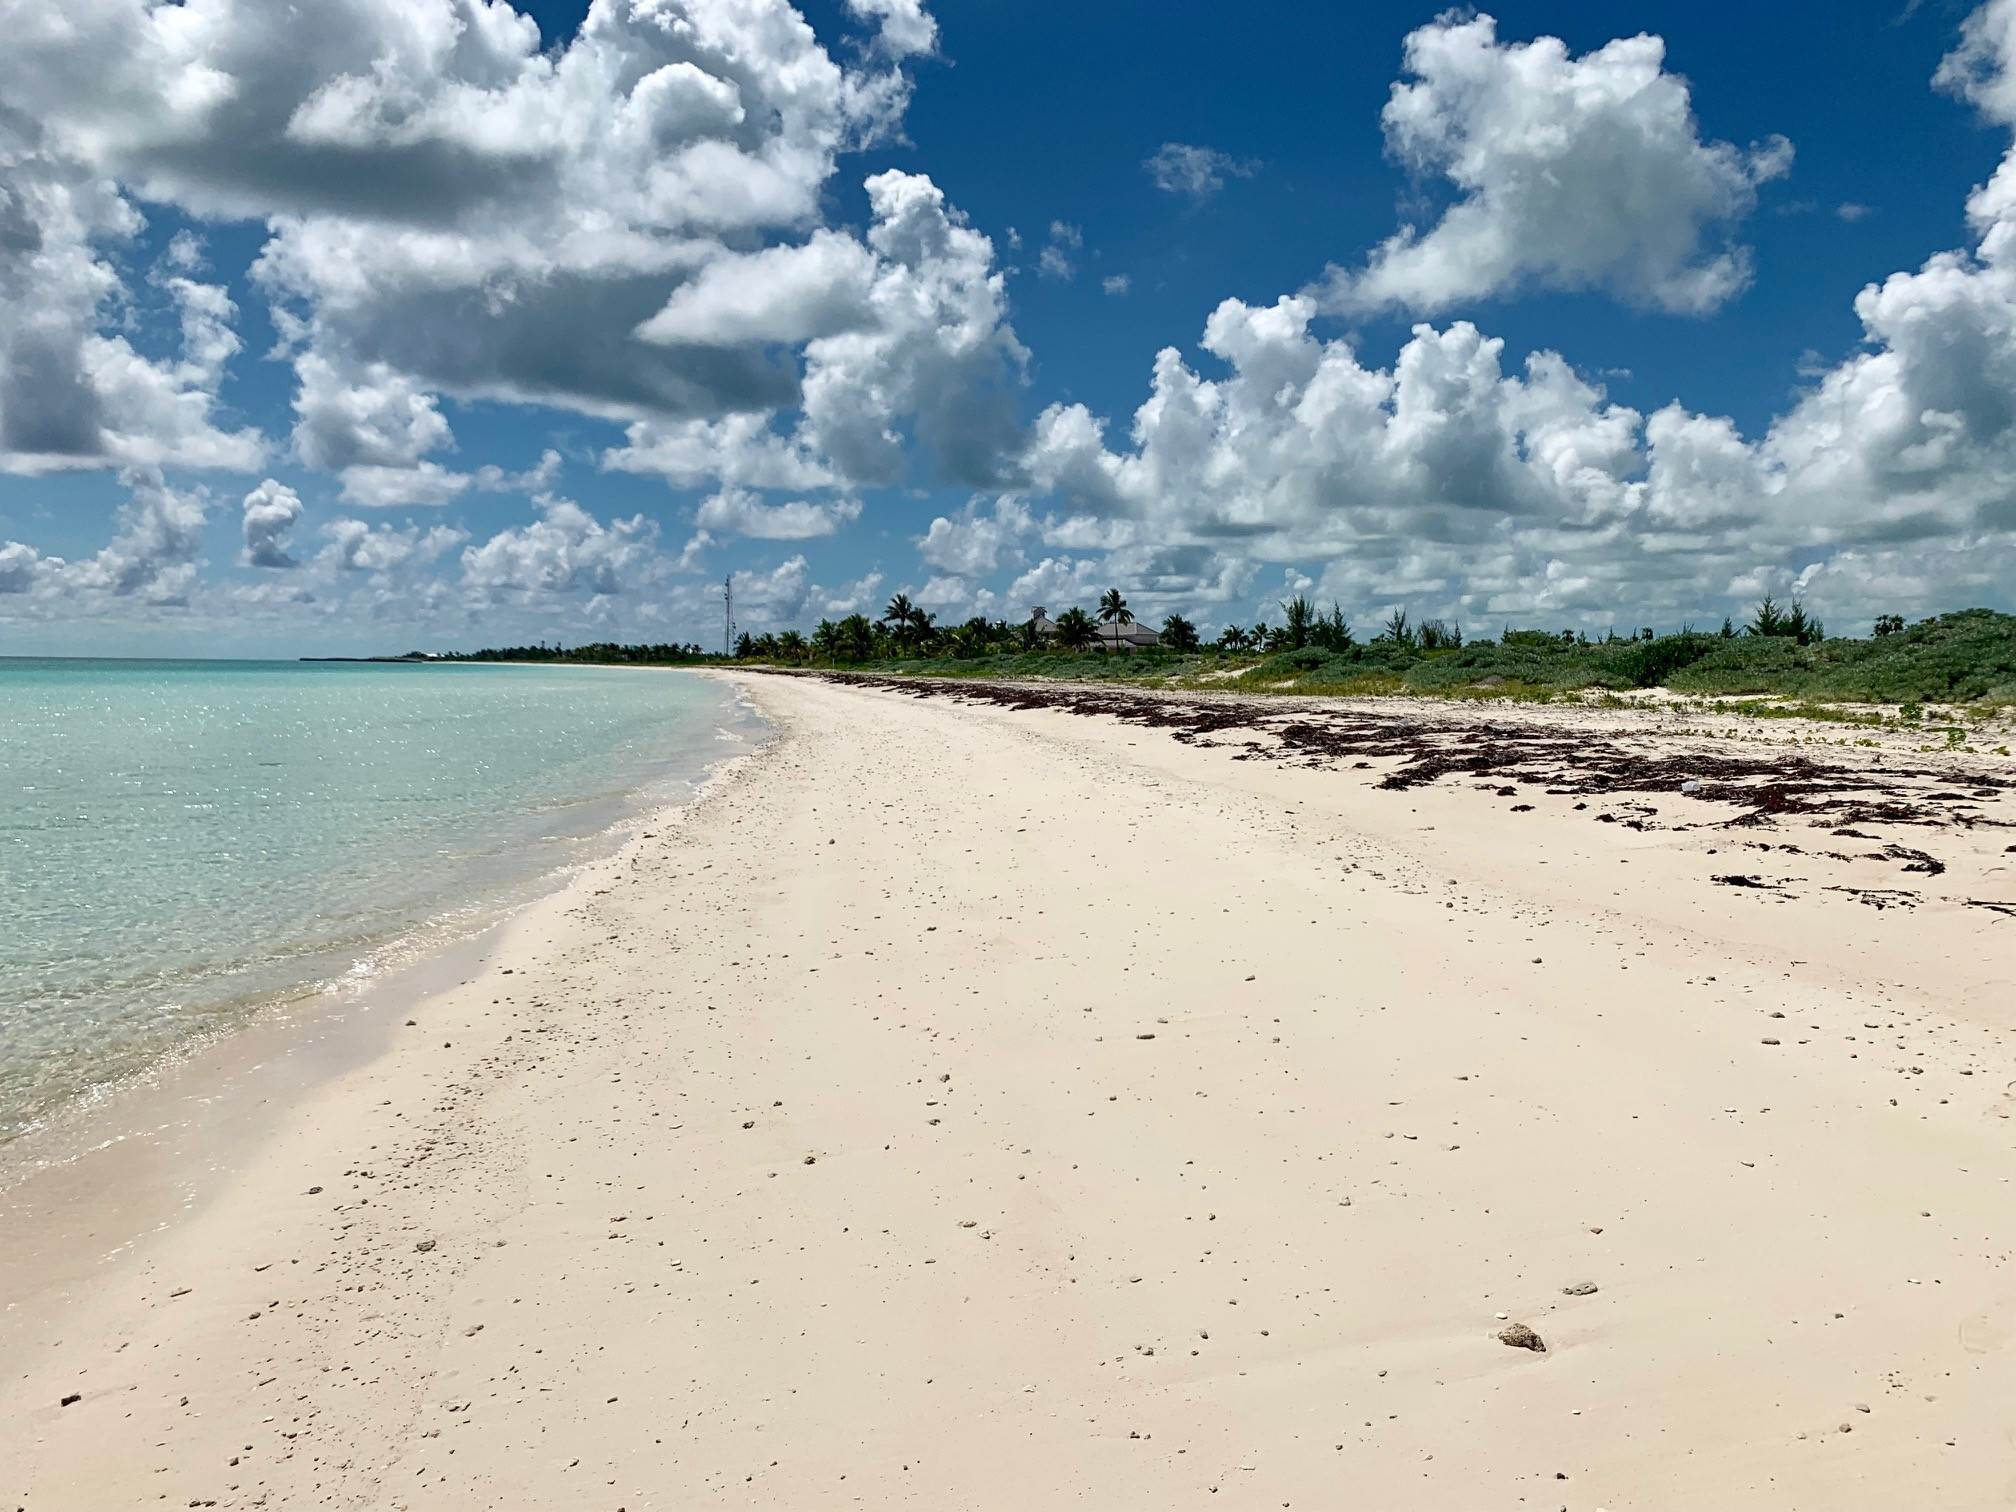 3. Land for Sale at Lot 29 Chub Cay - MLS 38796 Chub Cay, Berry Islands, Bahamas